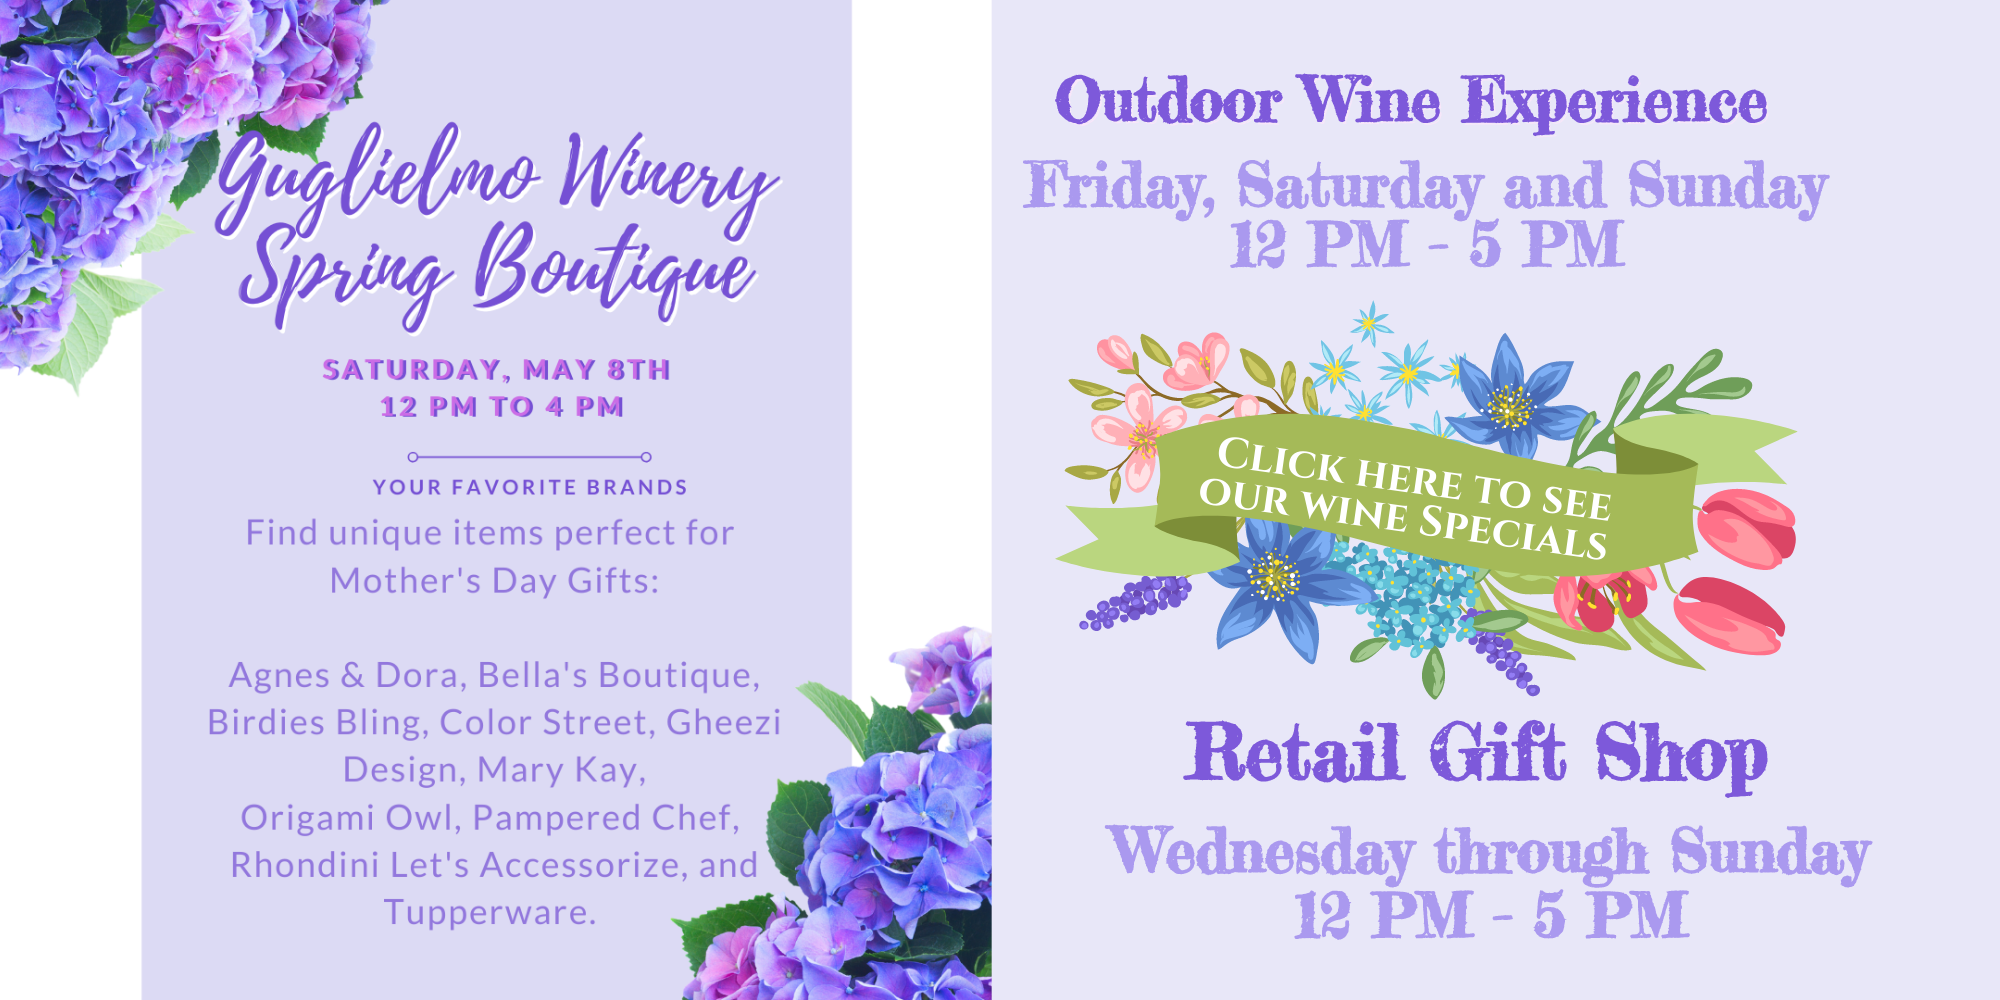 New May hours and Guglielmo Winery Spring Boutique